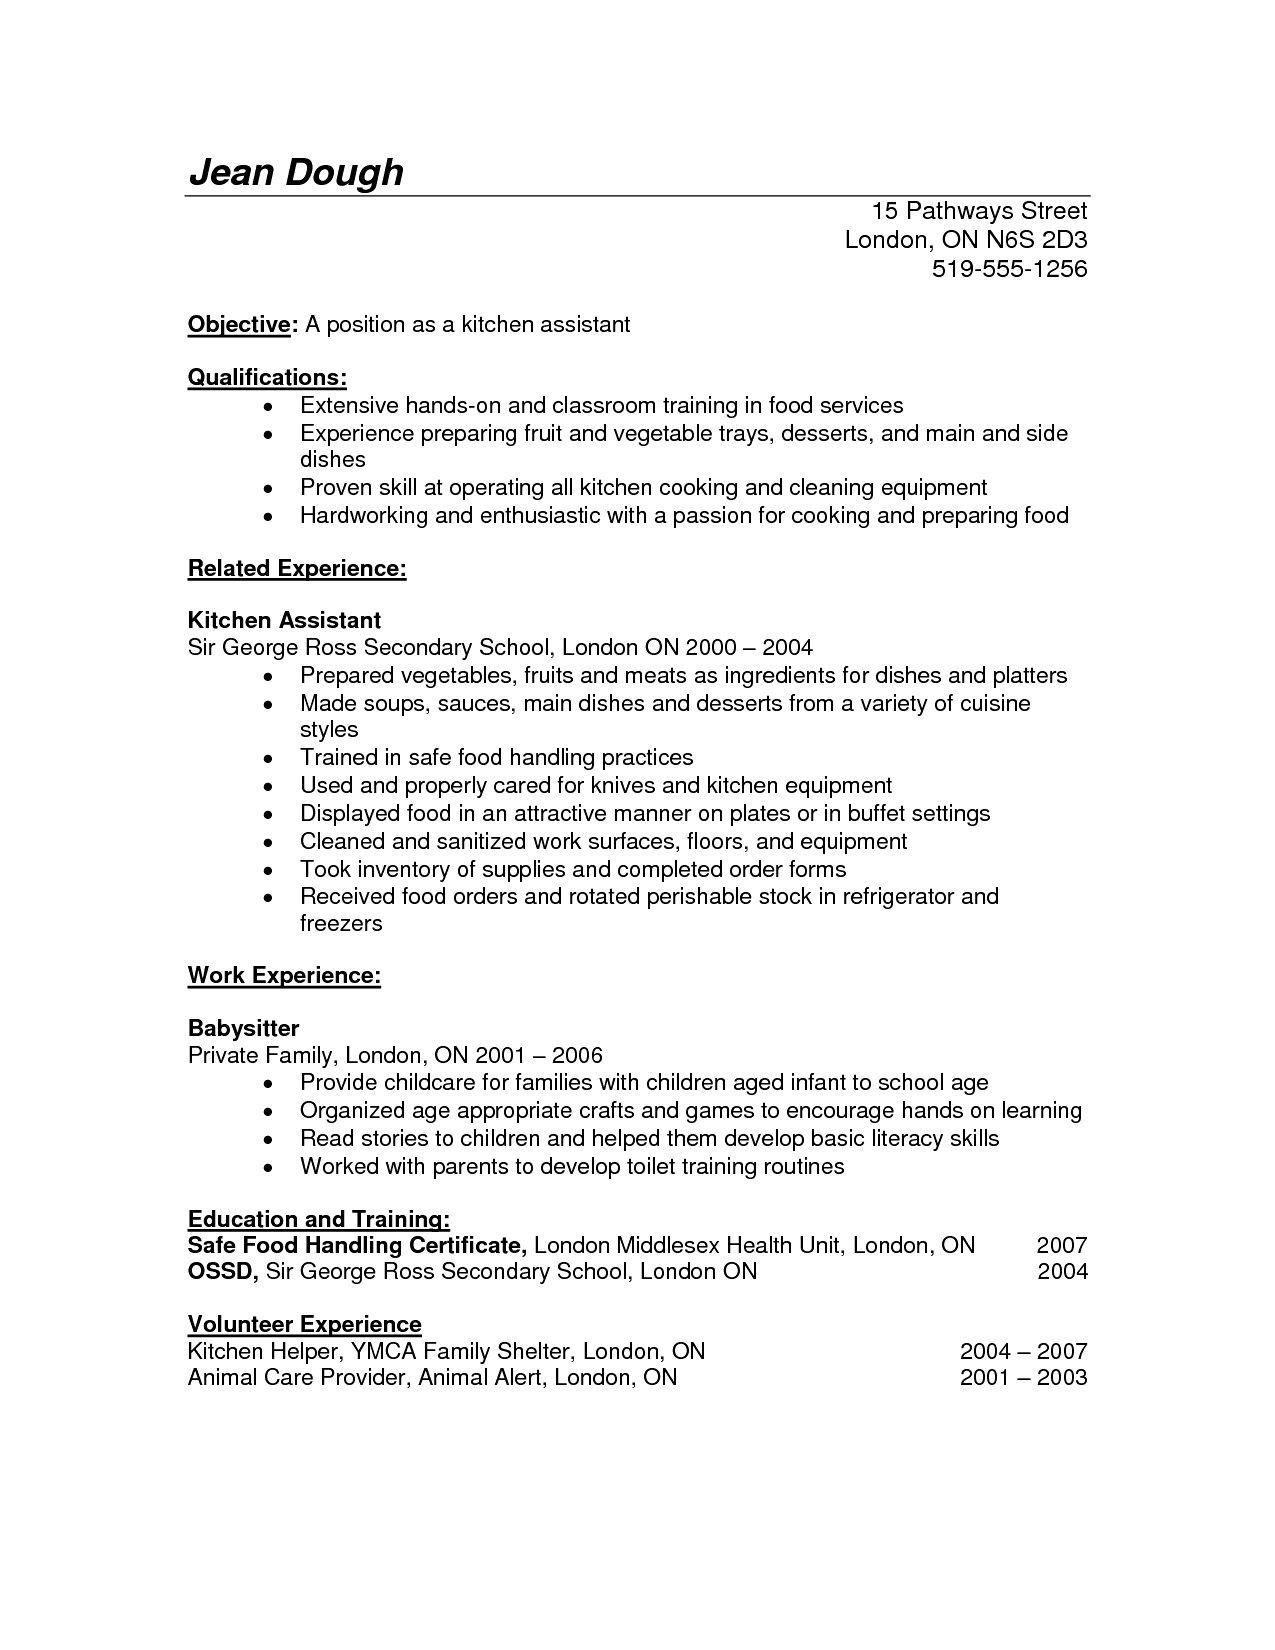 Teacher Resume Skills Section For Kitchen Helper 3 Resume Templates Resume Examples